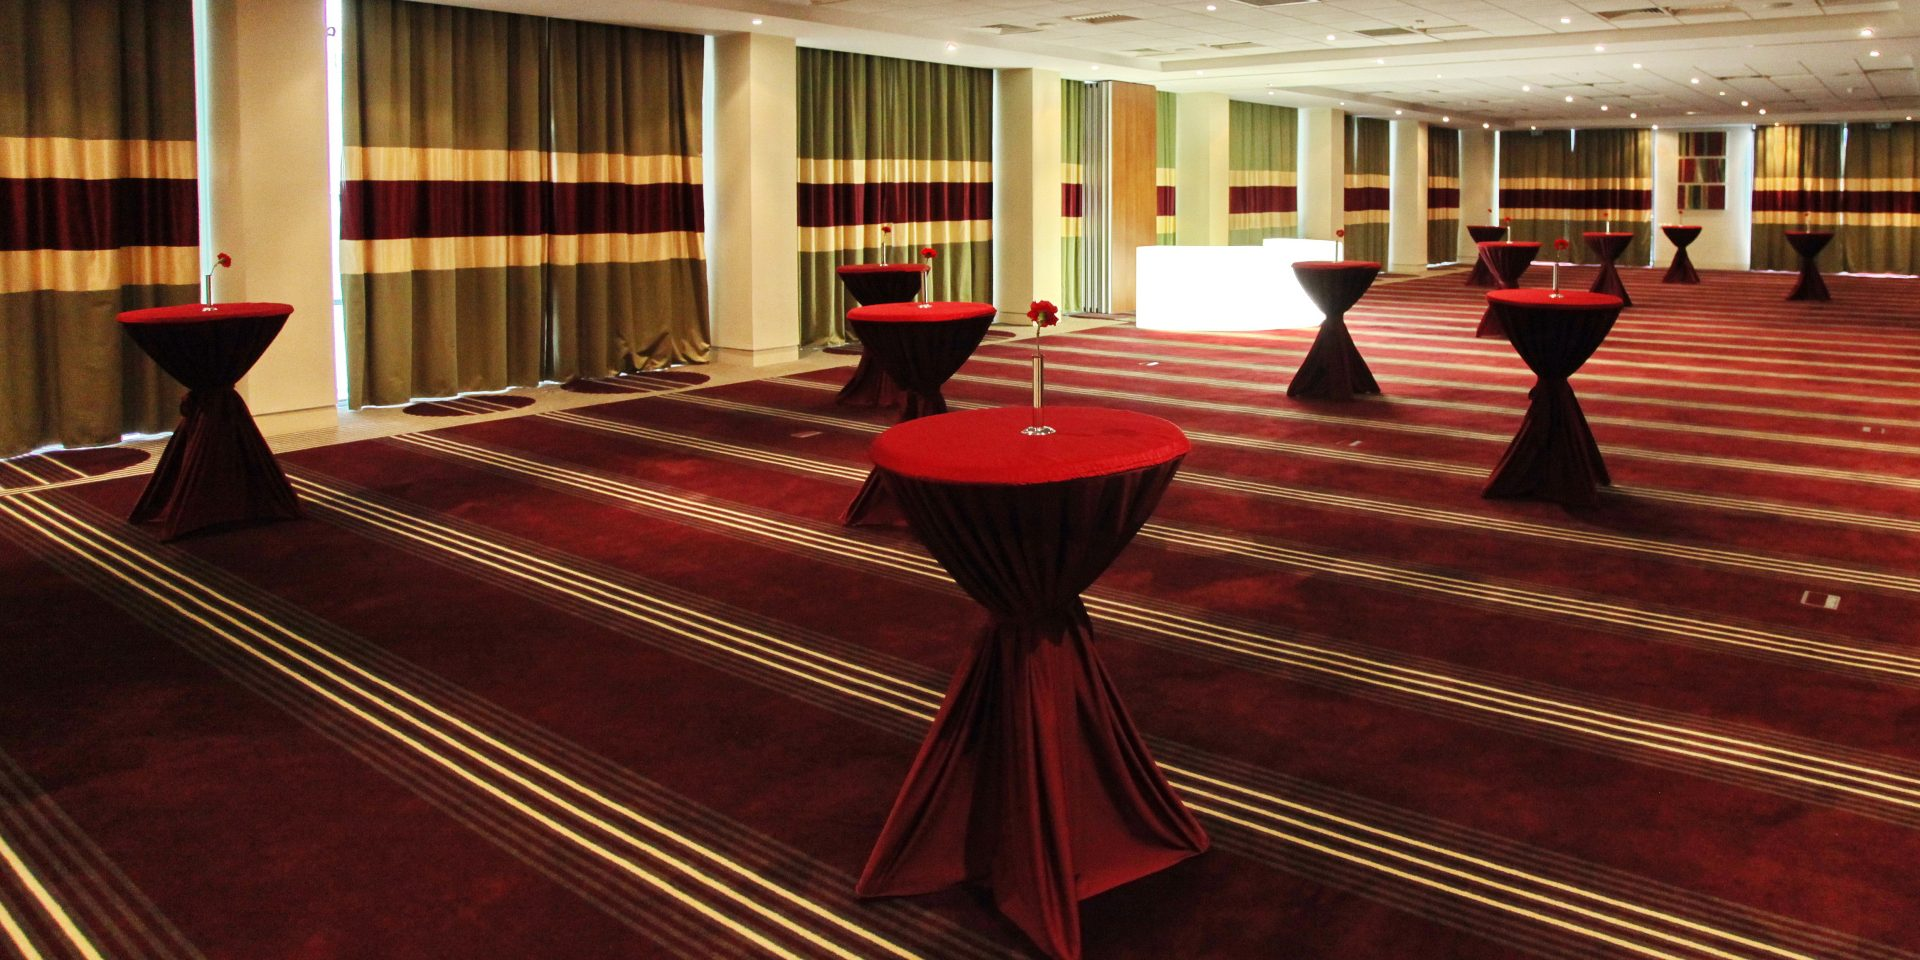 Exceptional interior designed banqueting suite